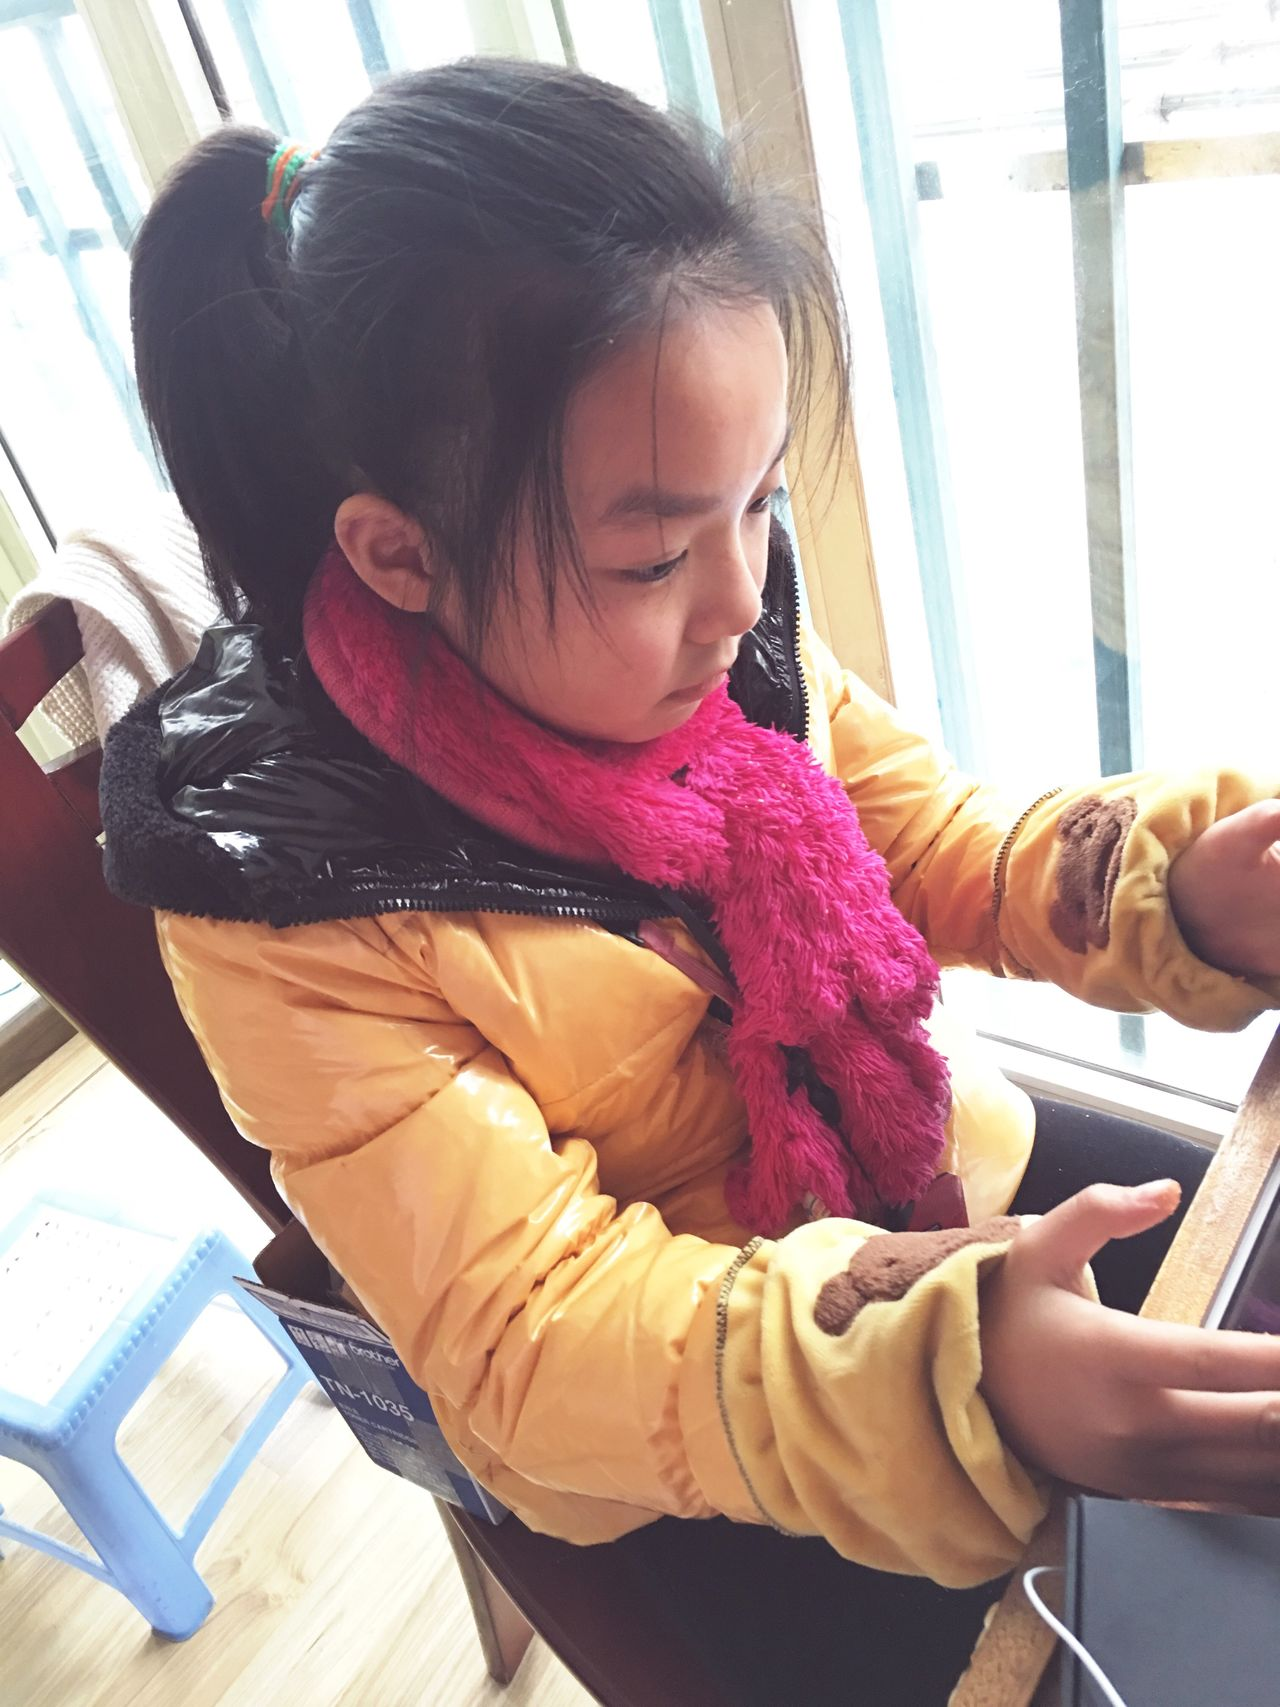 My Little Sister ♡ Cousion Chinesegirl Chinese Girl Youth Of Today People Photography Faces Of EyeEm